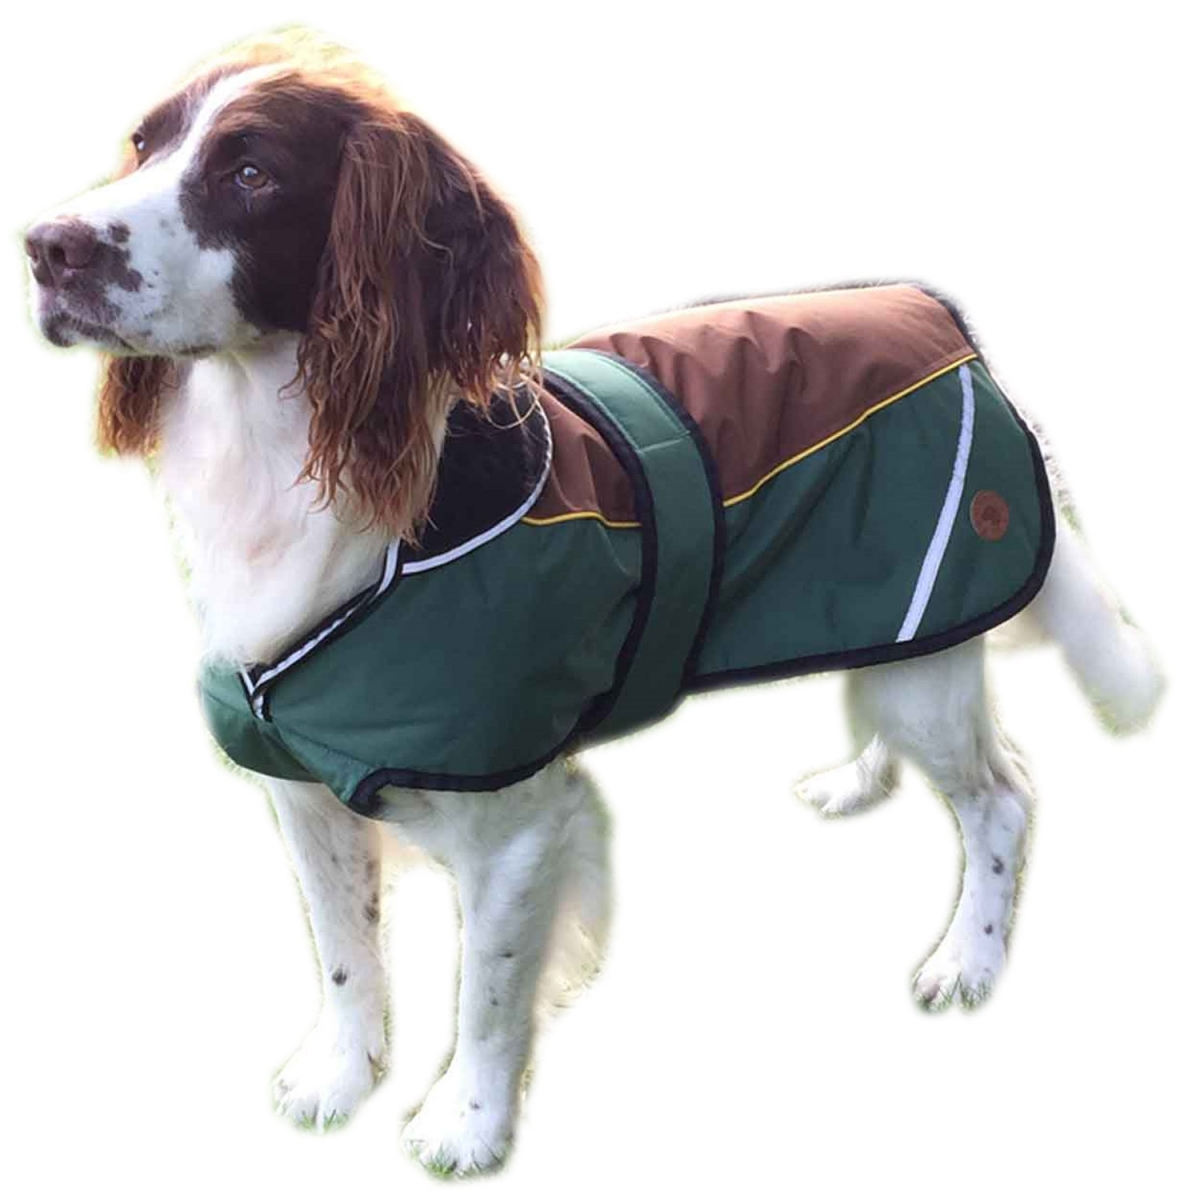 Hundewintermantel Waterproof, khaki 65cm